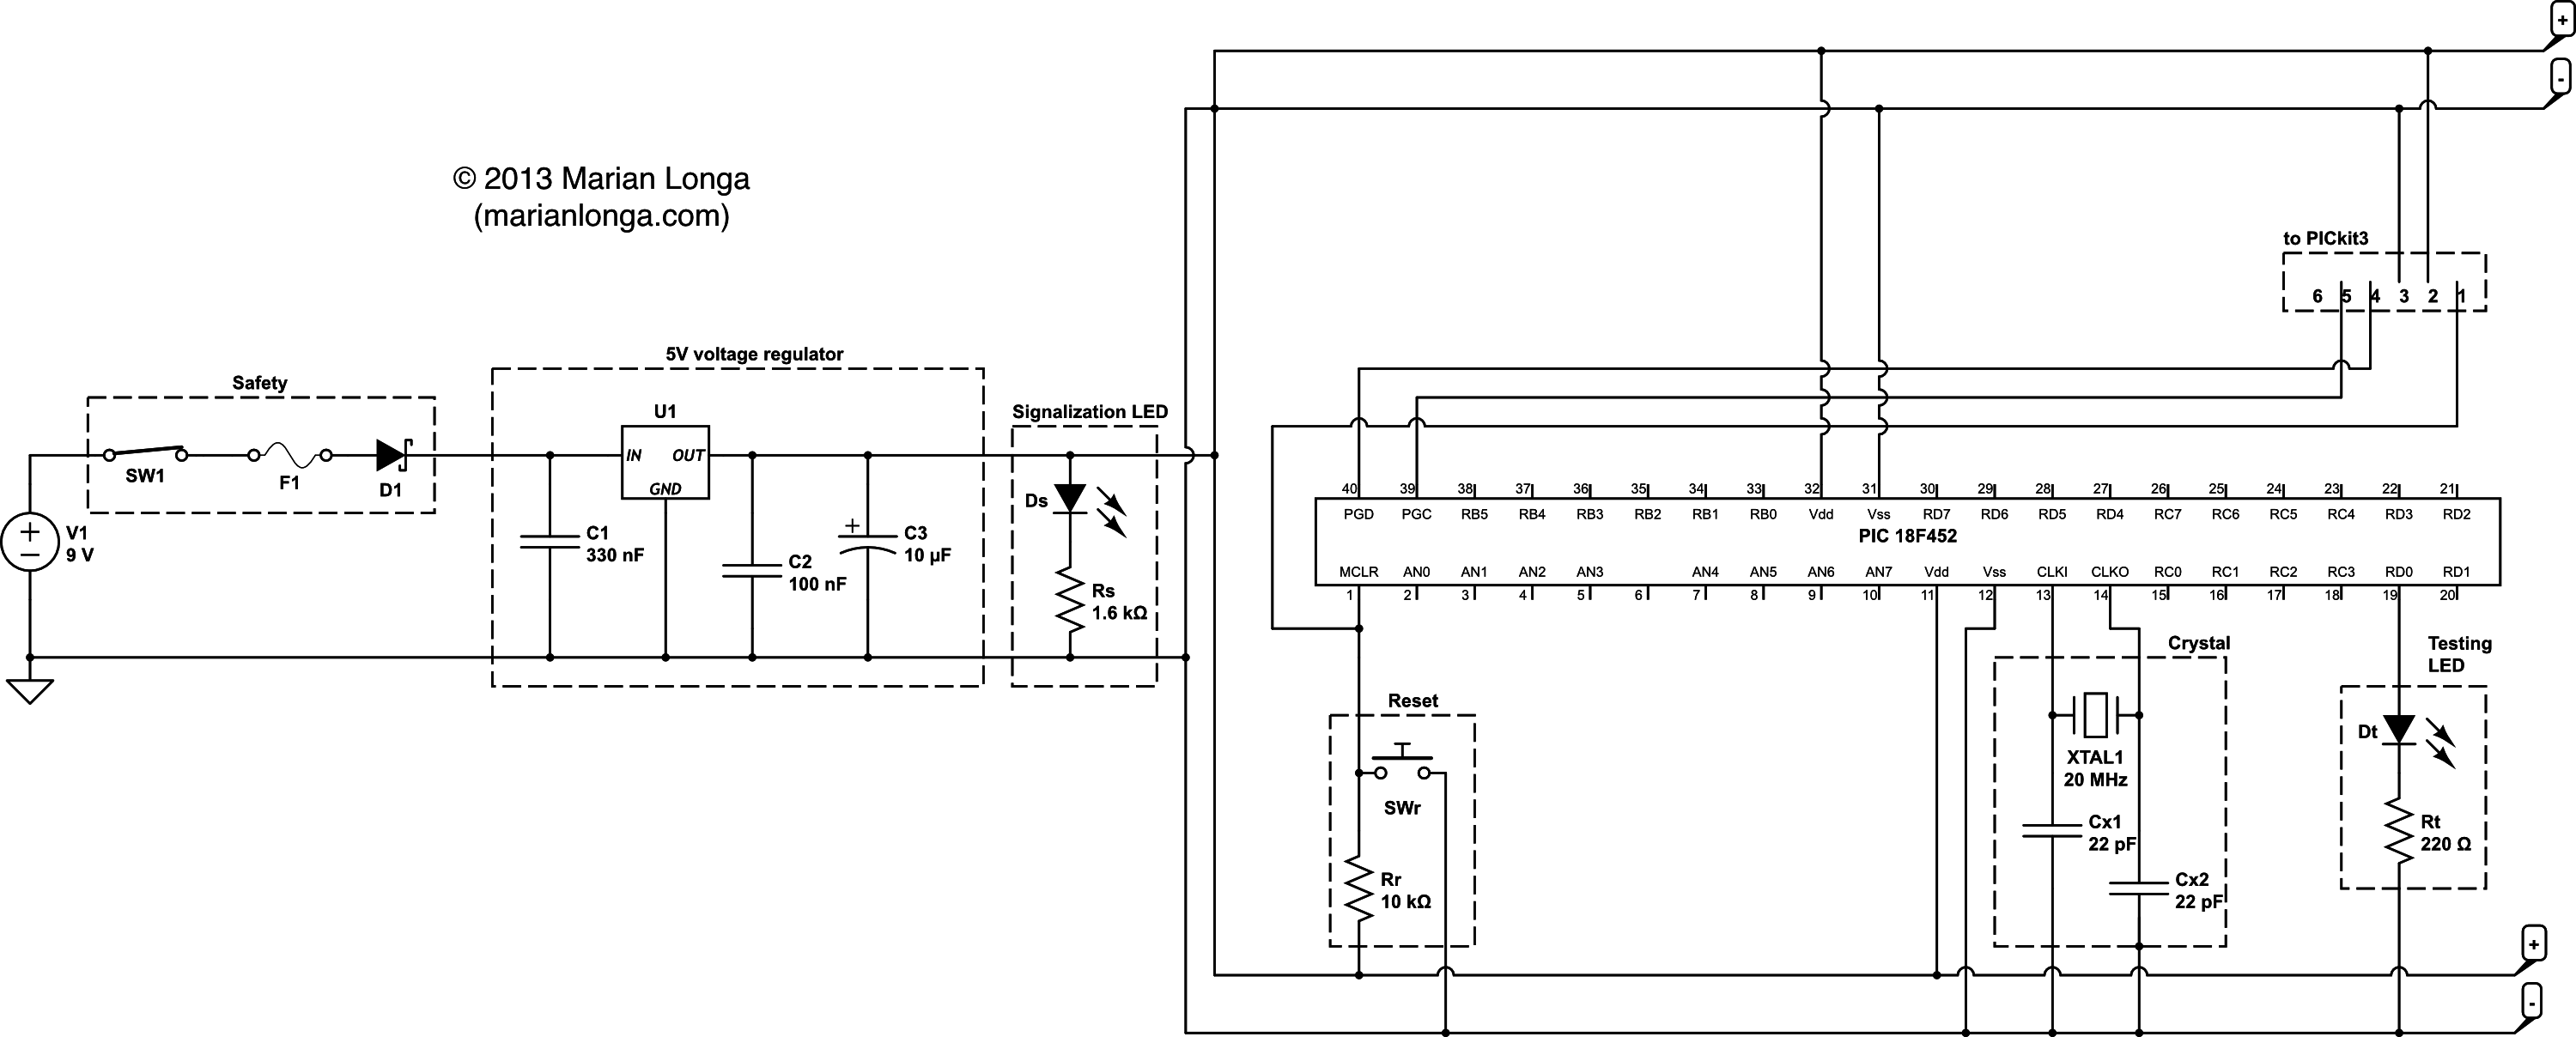 Blink An Led With Pic18f452 Simple Blinking Circuit Schematic For A To